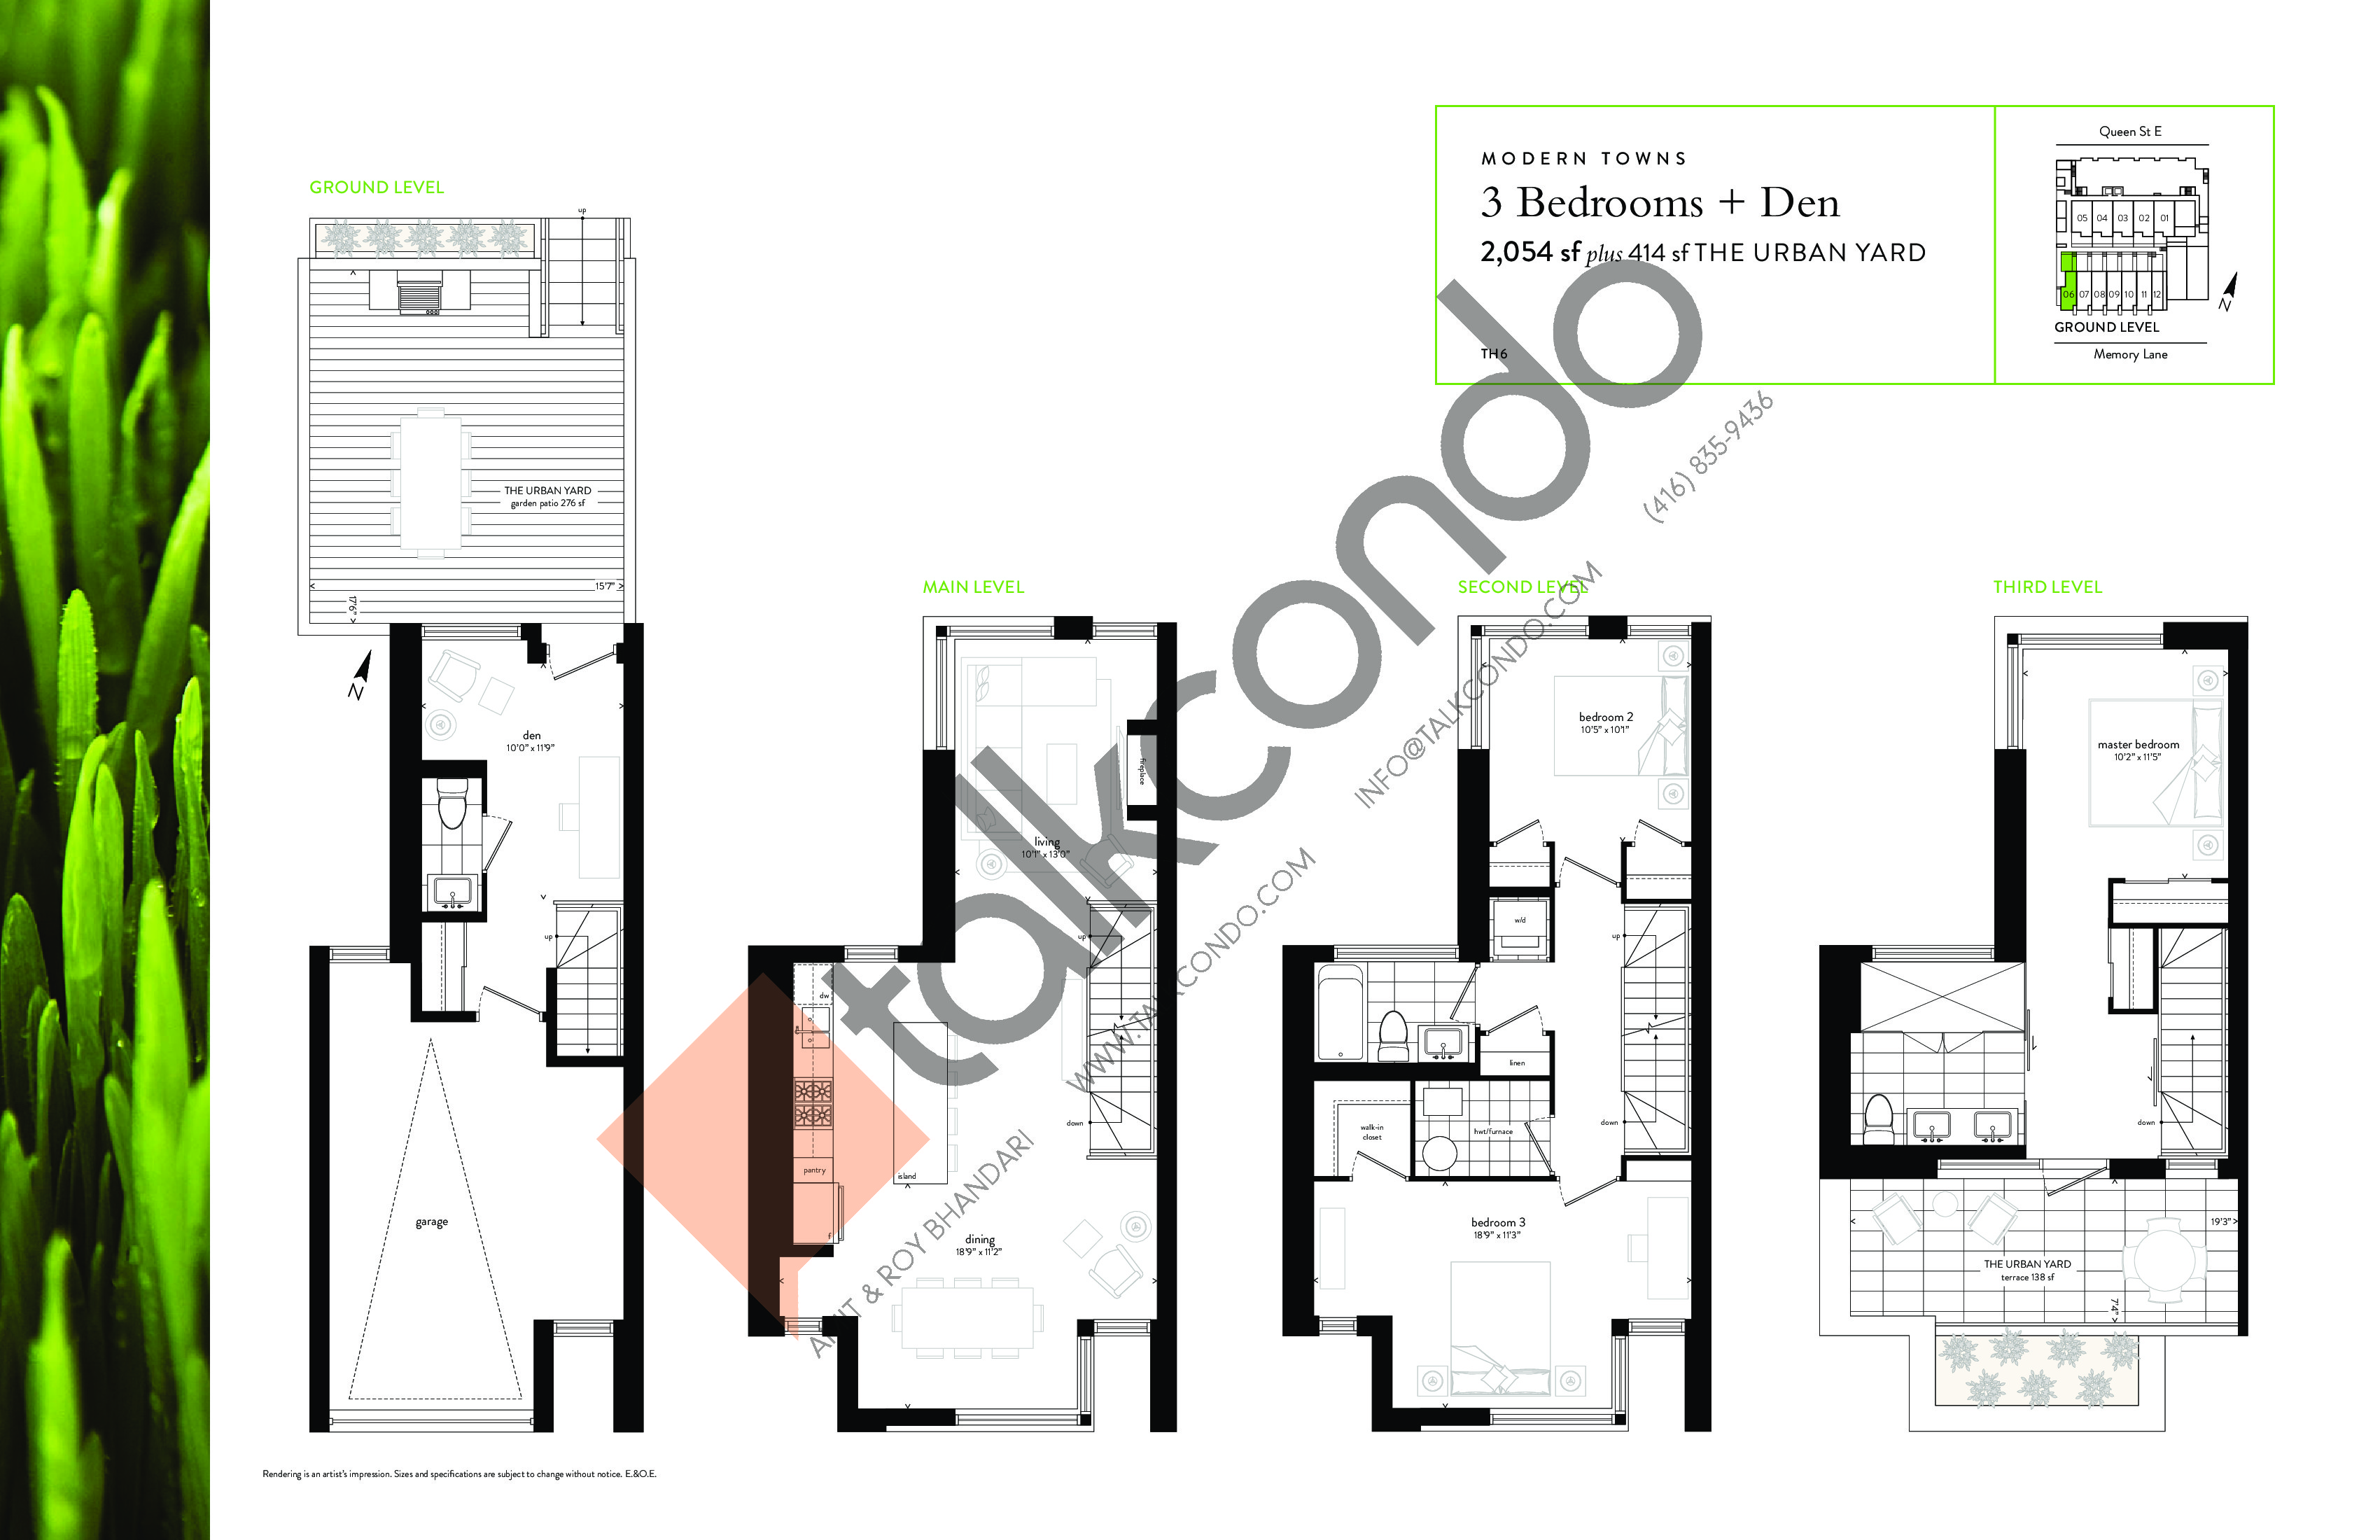 Modern Towns Floor Plan at George Condos & Towns - 2054 sq.ft